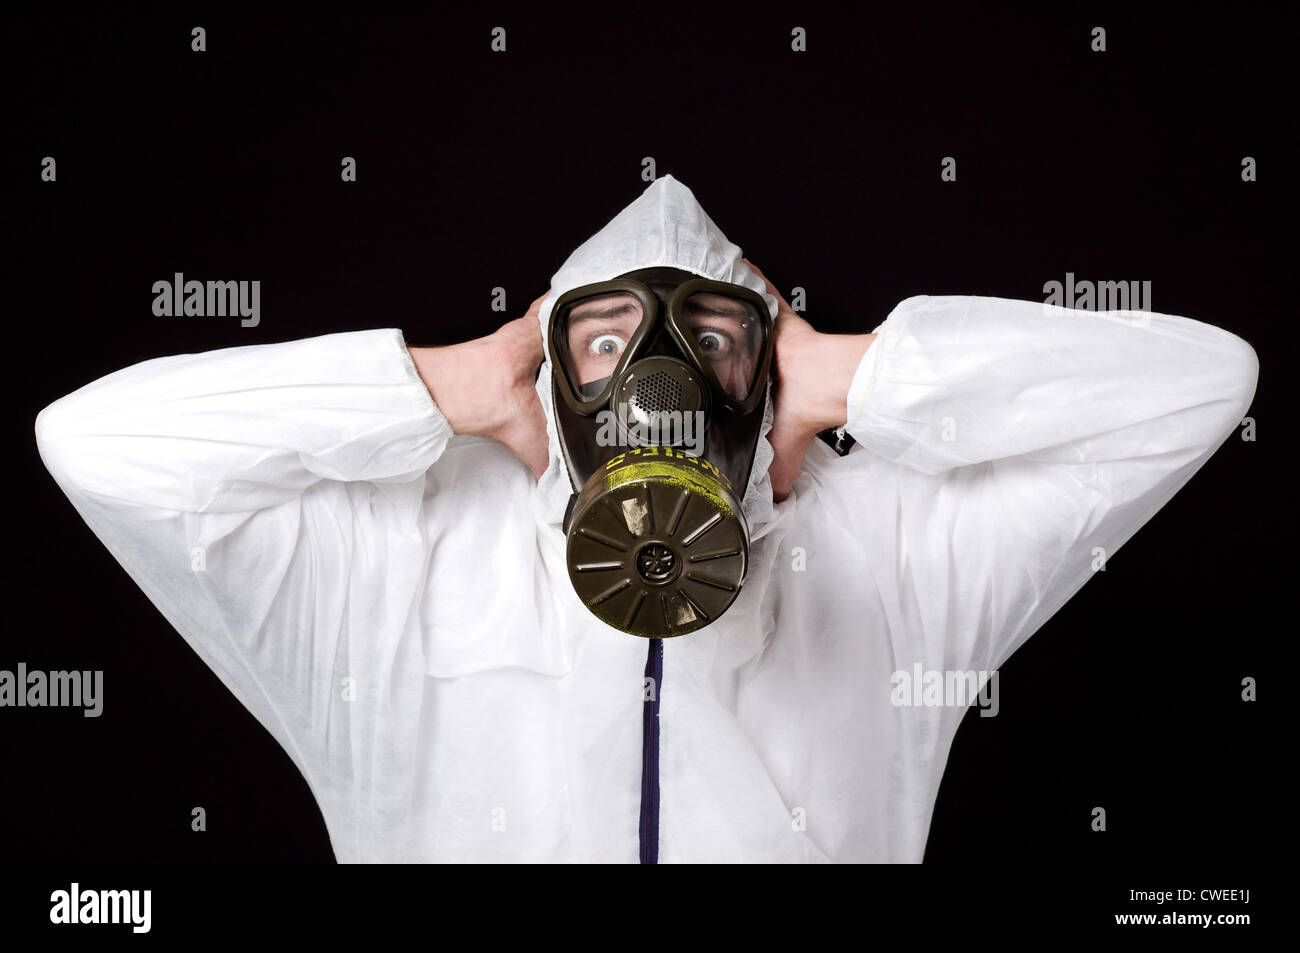 danger,risk,pollution,gas mask,air pollution - Stock Image